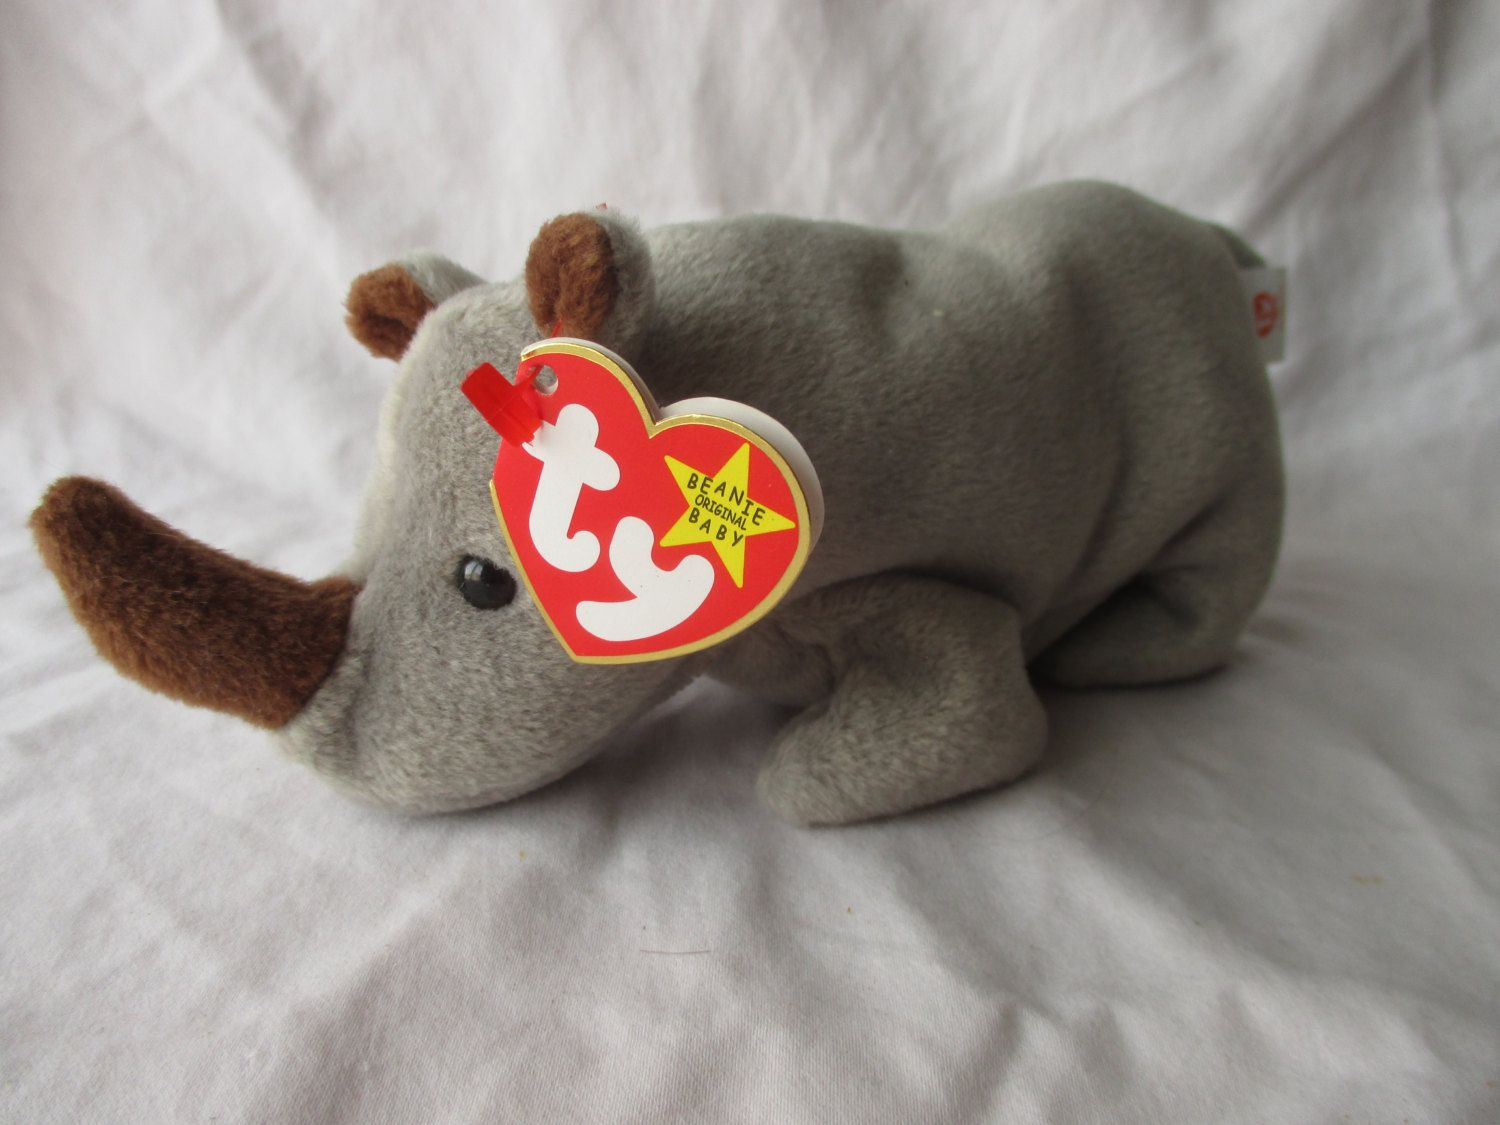 7262c47927a Vintage 1996 Beanie Baby Spike the Rhino by jclairep on Etsy